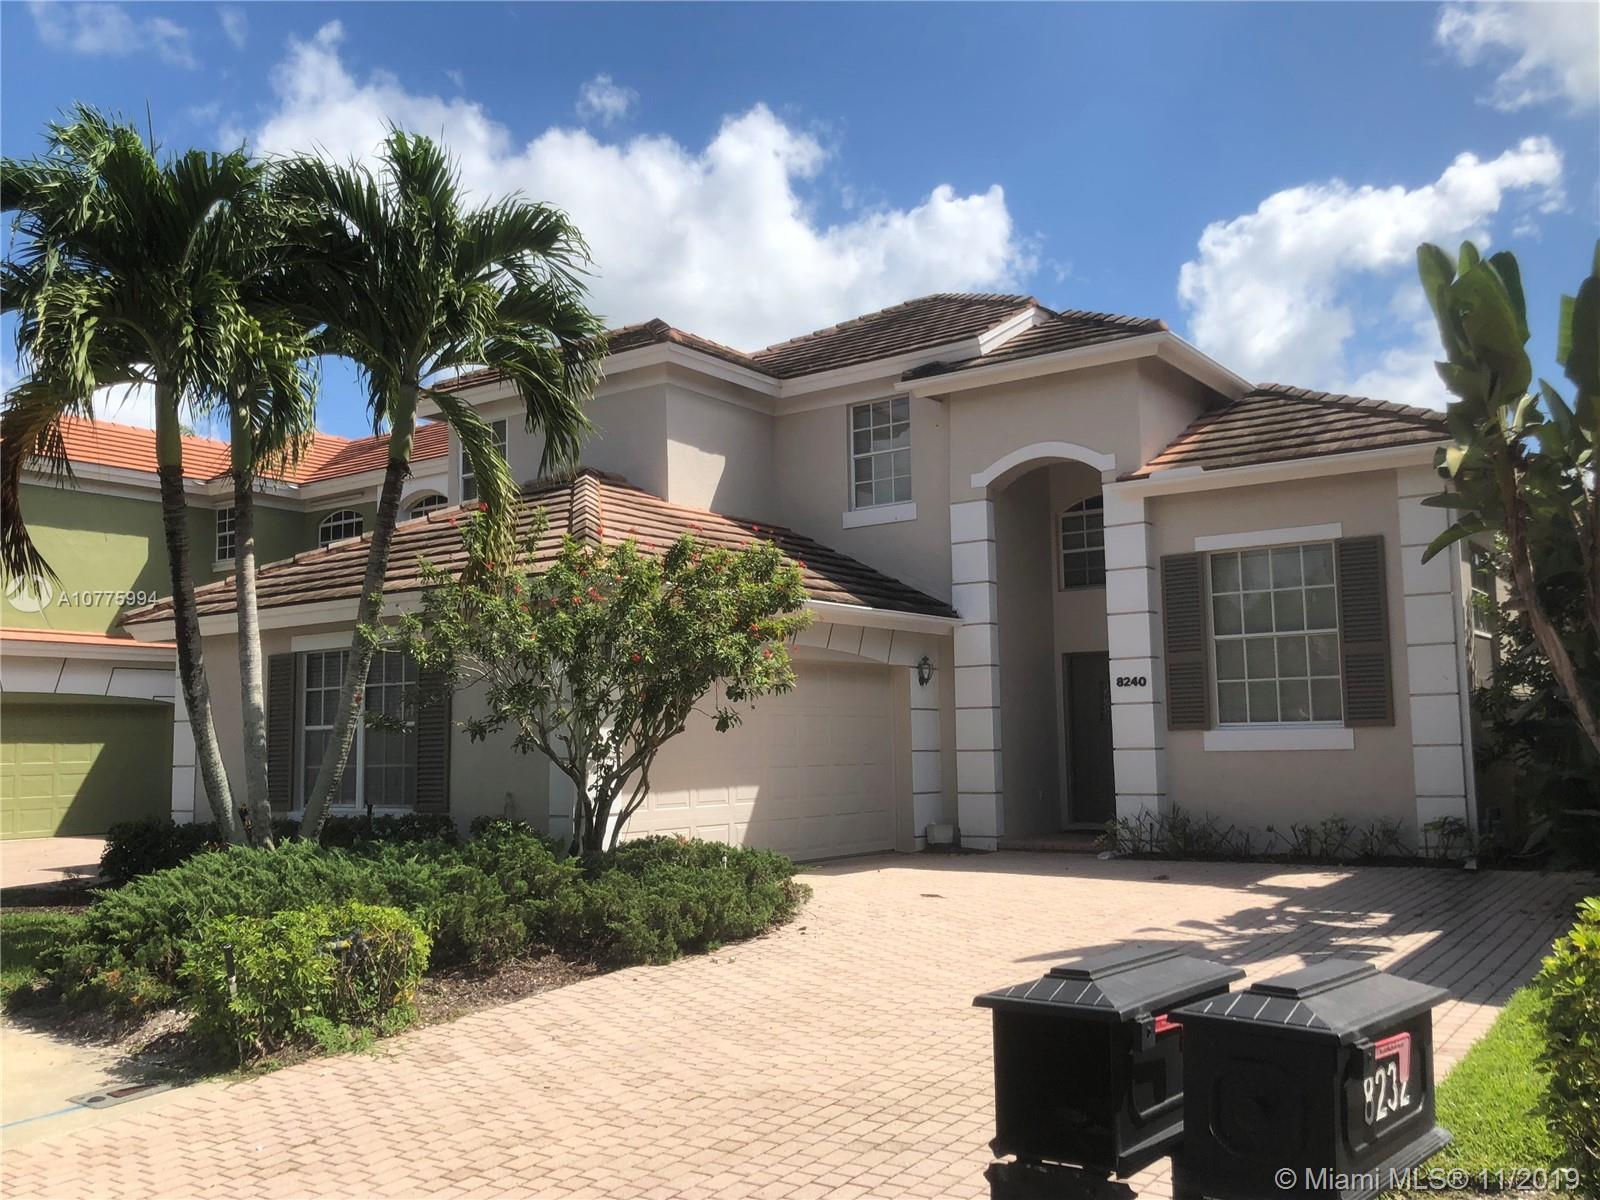 Great home is beautiful Ibis Golf Club. Home will need updating throughout. Great water views of lak